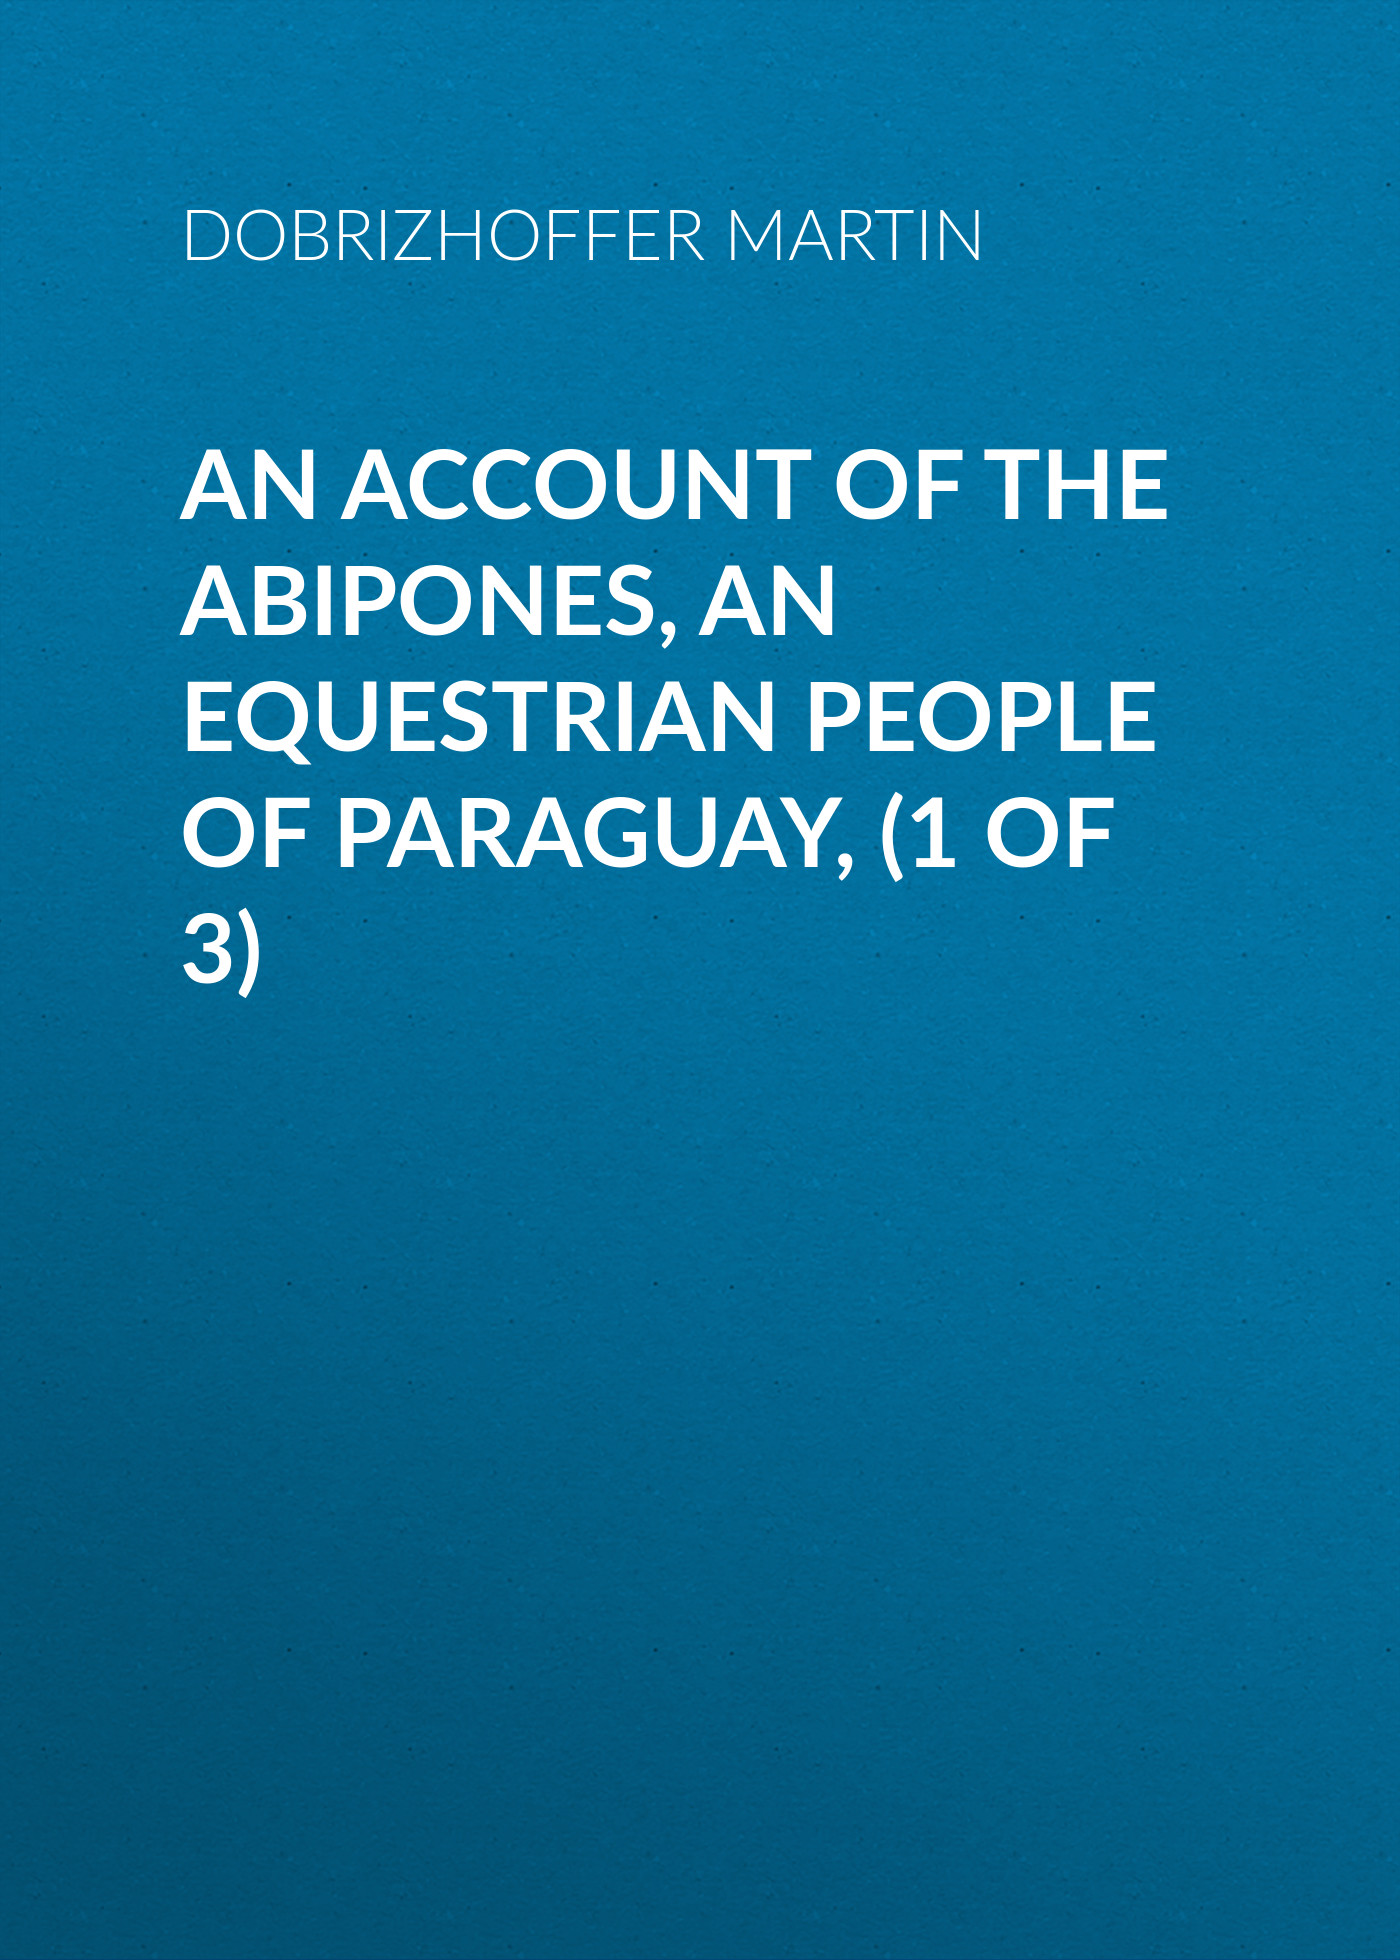 Dobrizhoffer Martin An Account of the Abipones, an Equestrian People of Paraguay, (1 of 3) folk of the world paraguay